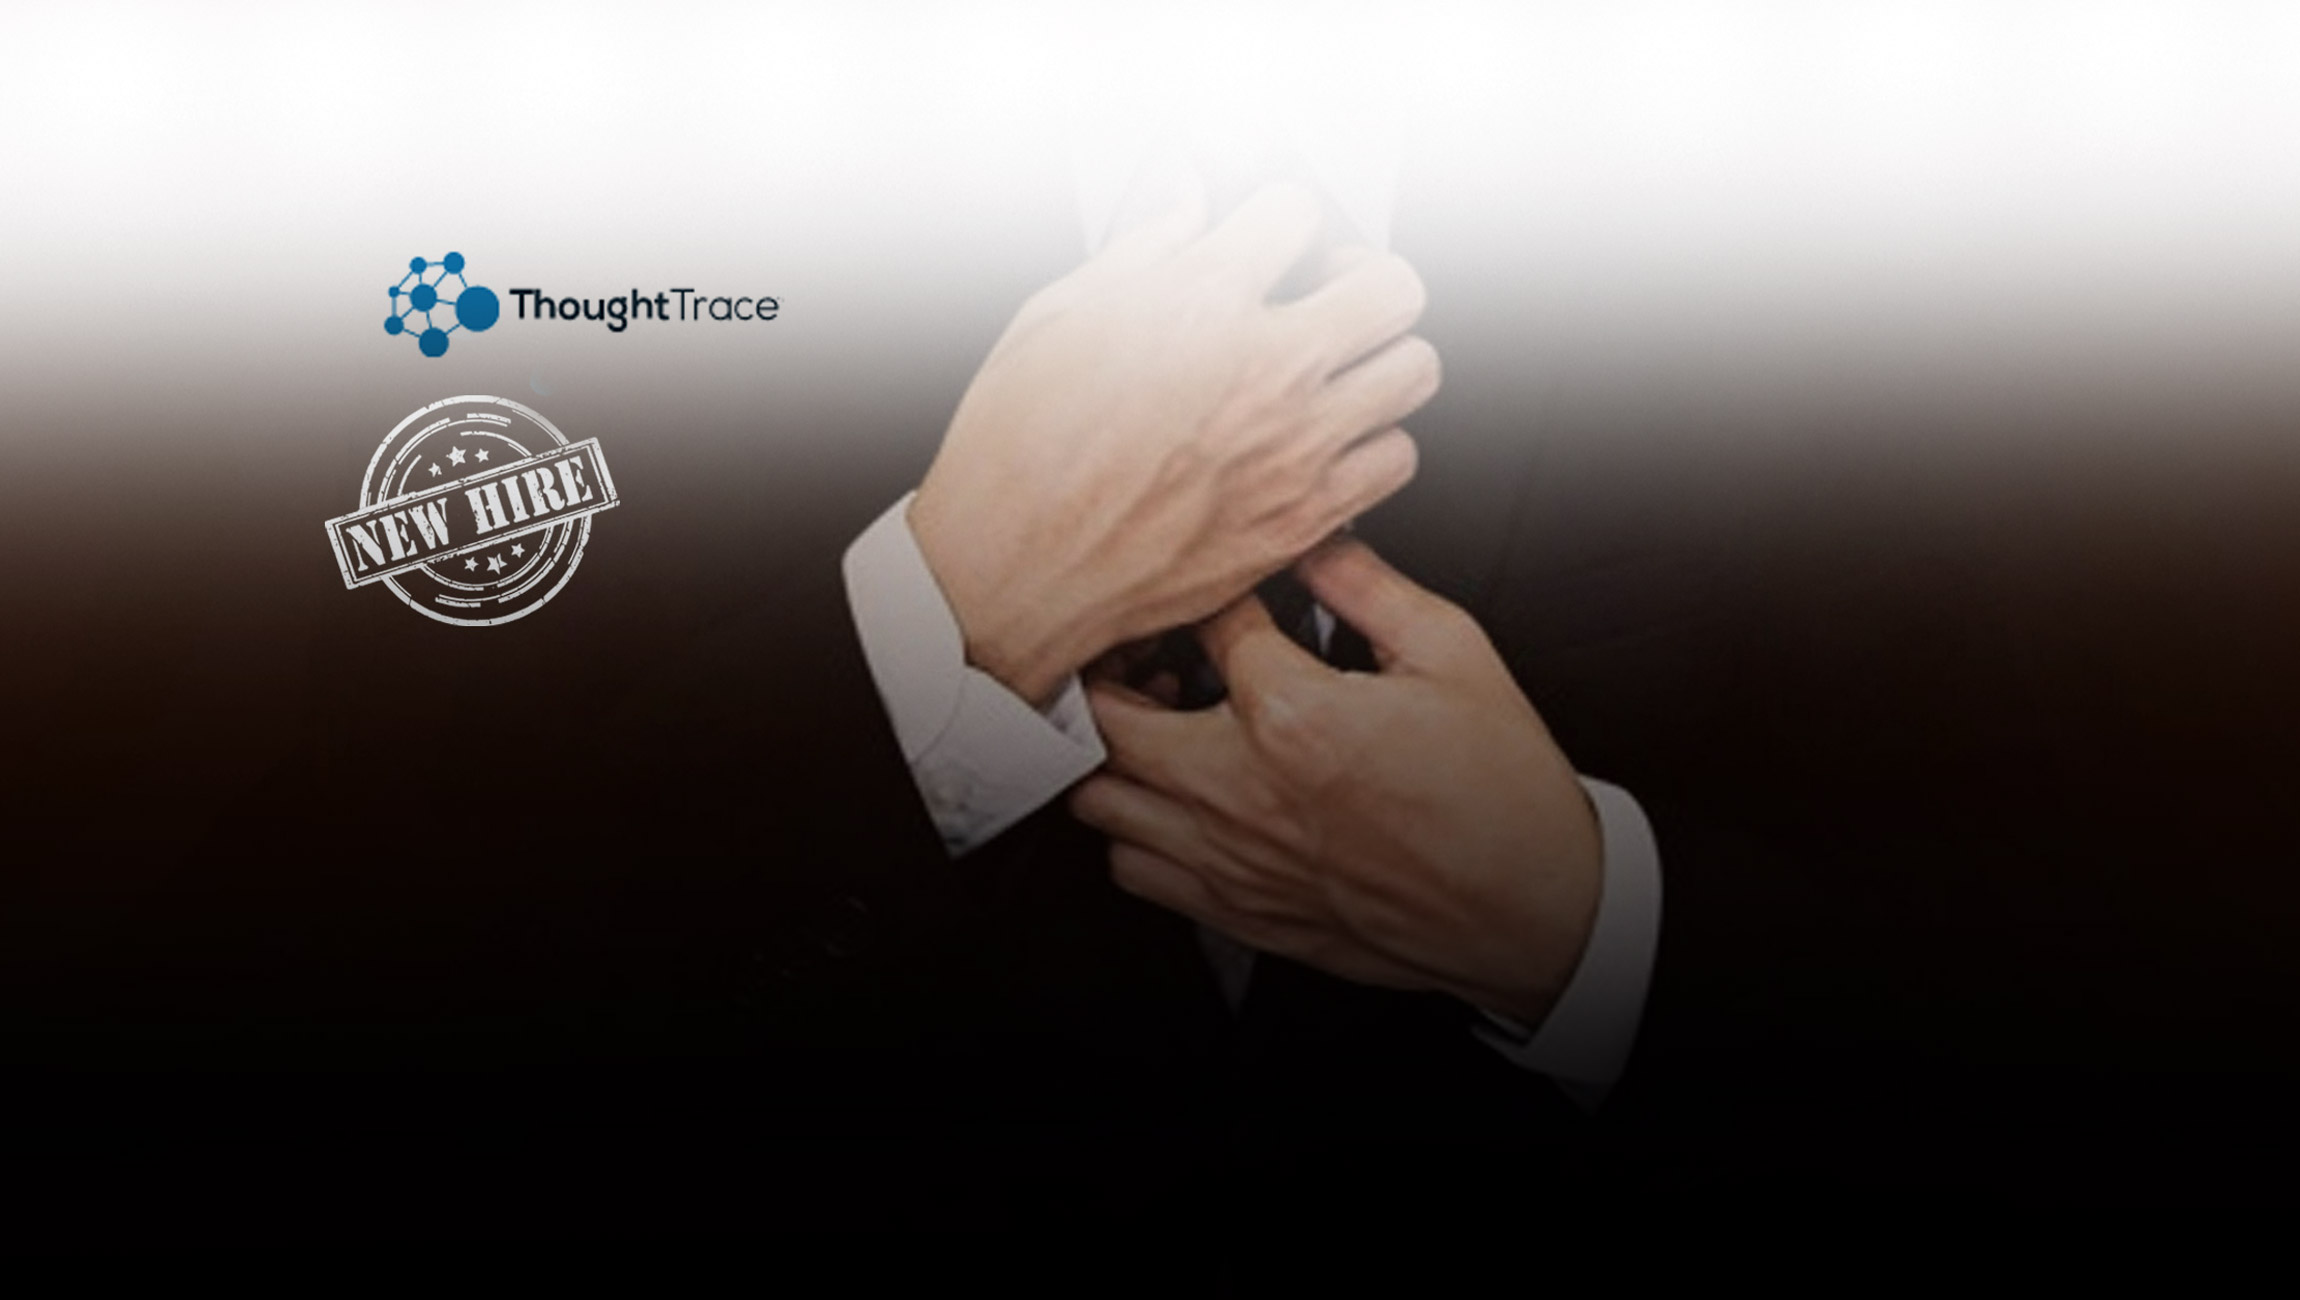 ThoughtTrace Announces John Bibeau to Join as Vice President of Real Estate